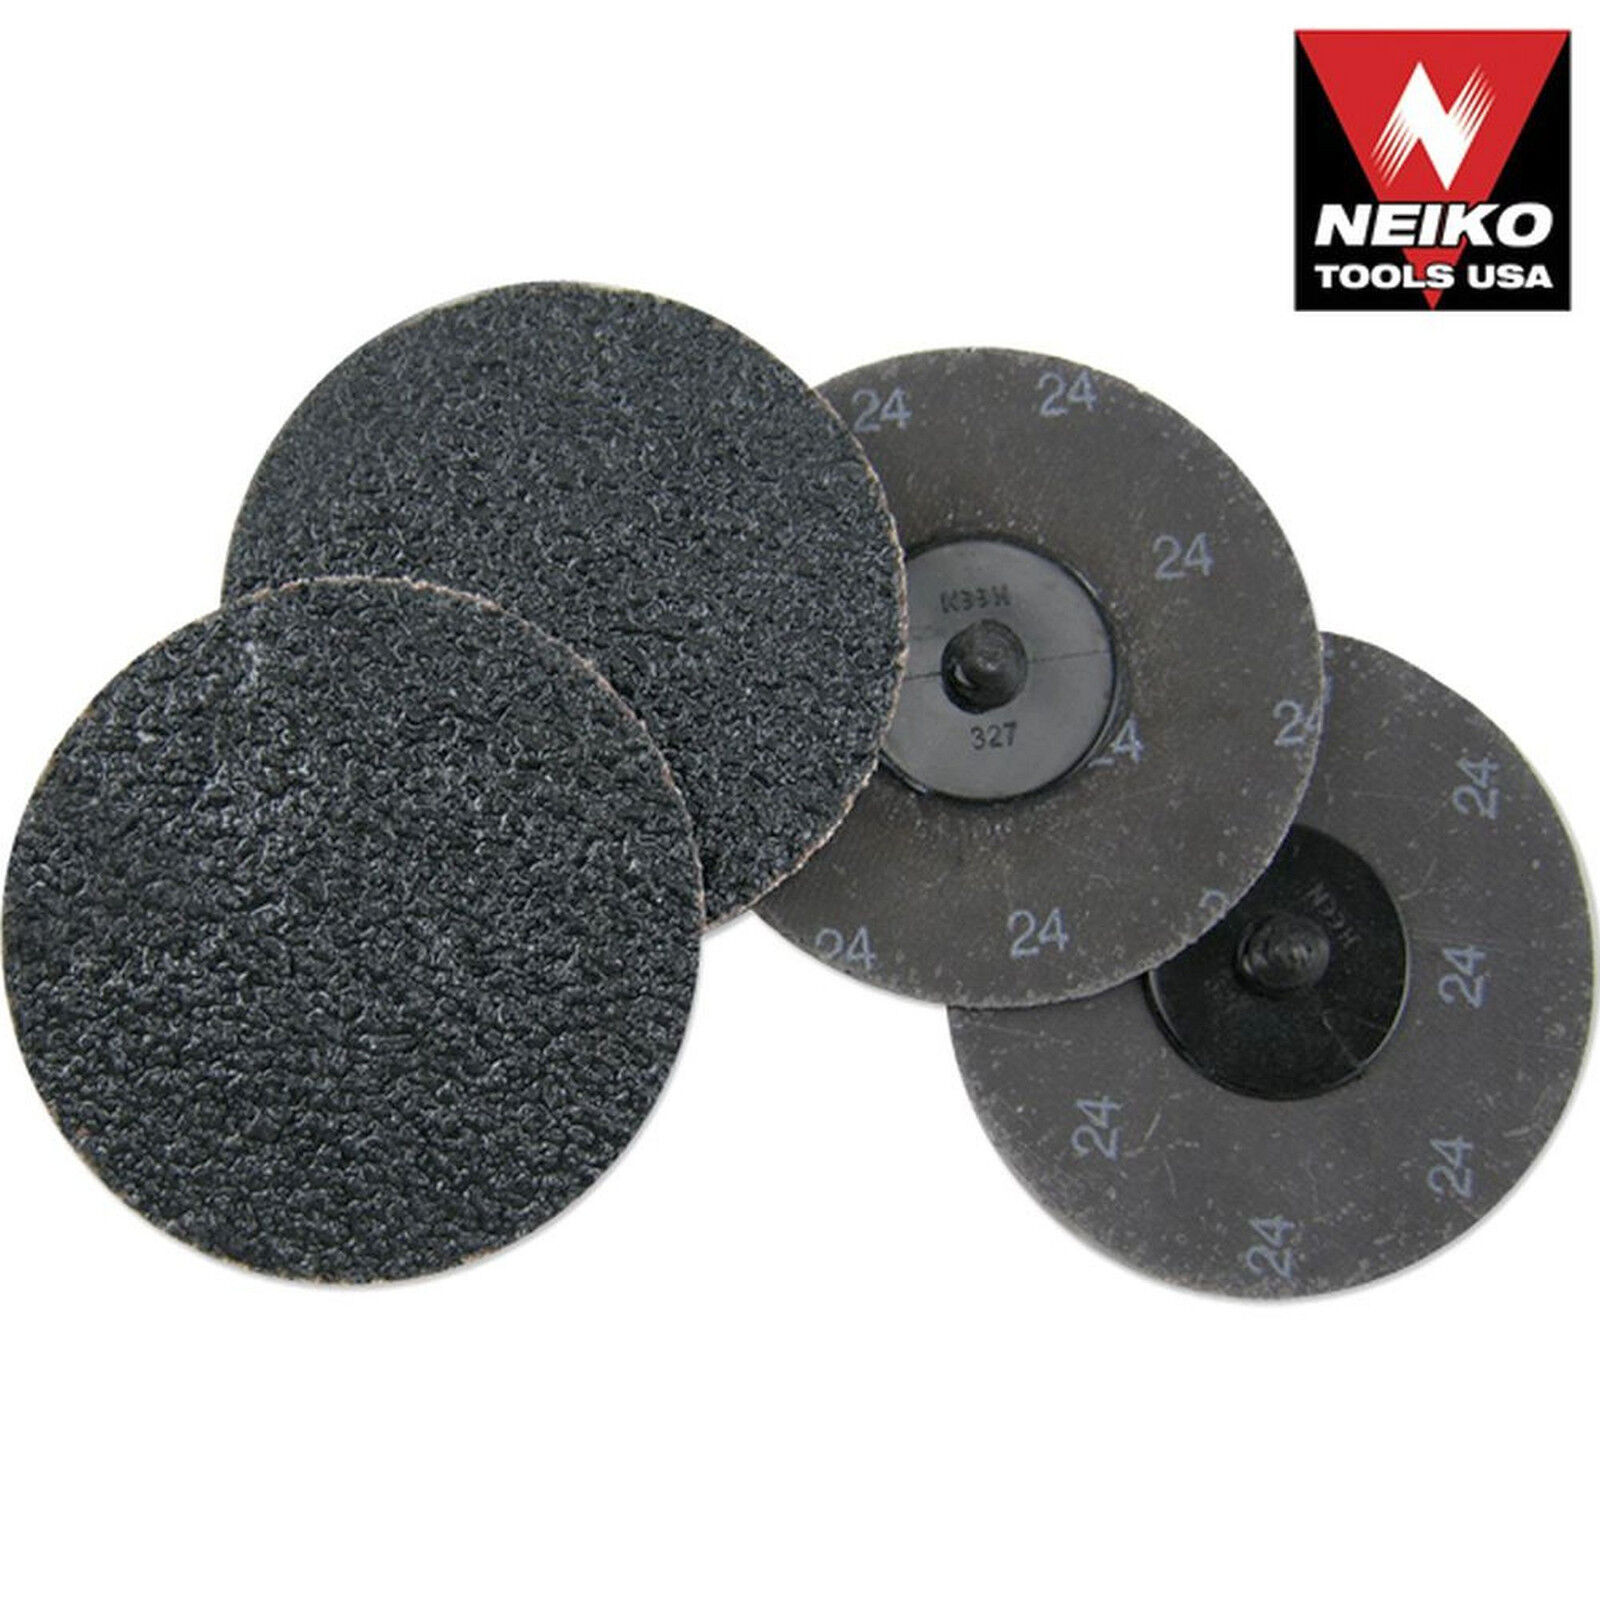 50pieces Wet//Dry Sandpaper Silicon Carbide Sanding Discs 3in//75mm 800-10000 Grit